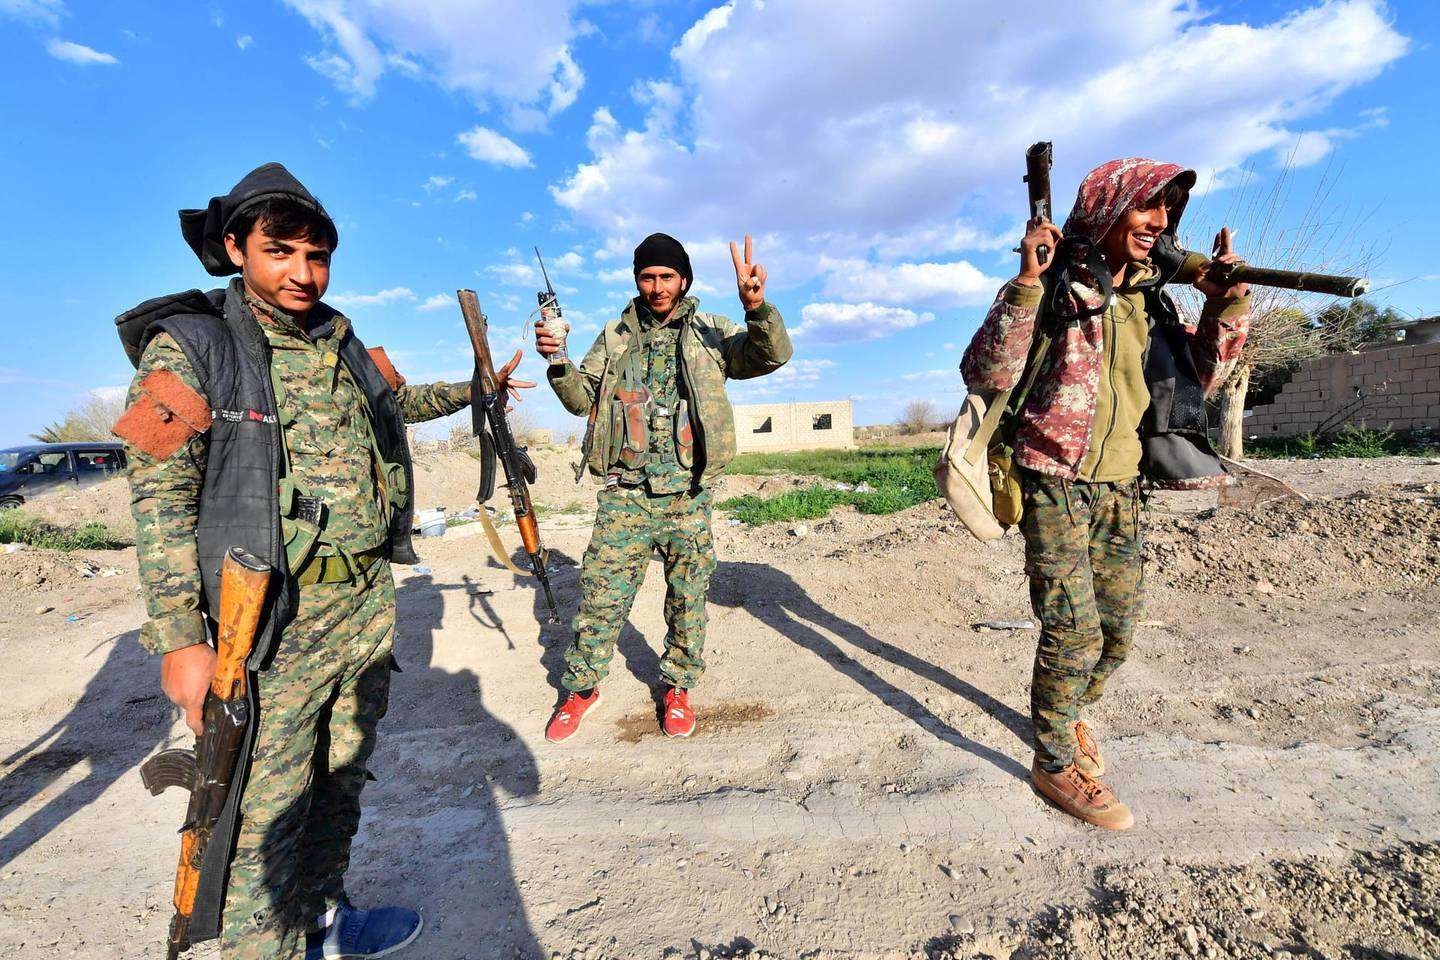 """Fighters from the Syrian Democratic Forces (SDF) gesture the """"V"""" for victory sign as they come back from the frontline in the Islamic State group's last remaining position in the village of Baghouz in the countryside of the eastern Syrian province of Deir Ezzor on March 19, 2019. - The Kurdish-led SDF have been closing in on IS fighters holed up in a small sliver of territory in the village of Baghouz in eastern Syria since January. (Photo by GIUSEPPE CACACE / AFP)"""